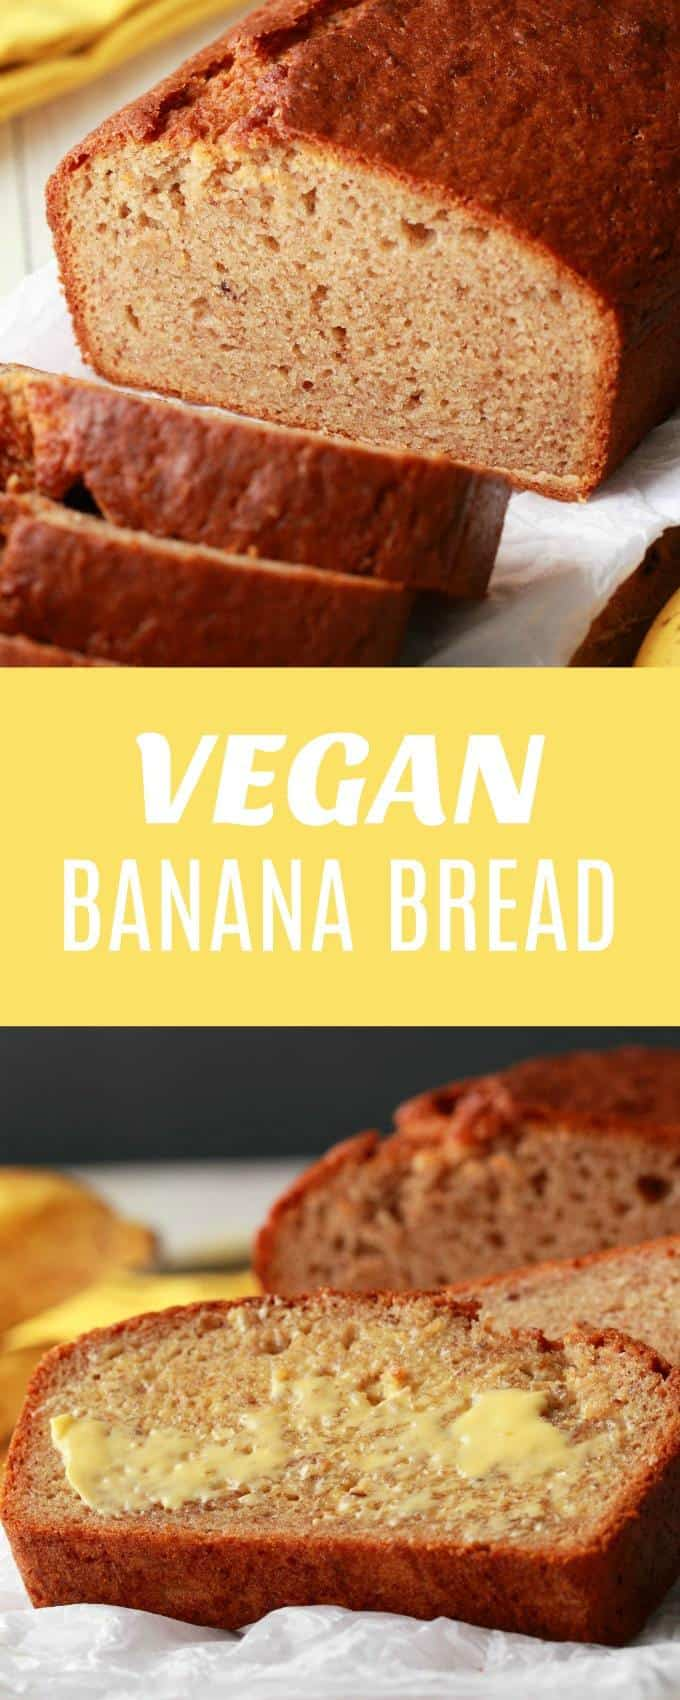 Simple Vegan Banana Bread - crispy on the outside, moist on the inside and delicious served warm from the oven with vegan butter! | lovingitvegan.com